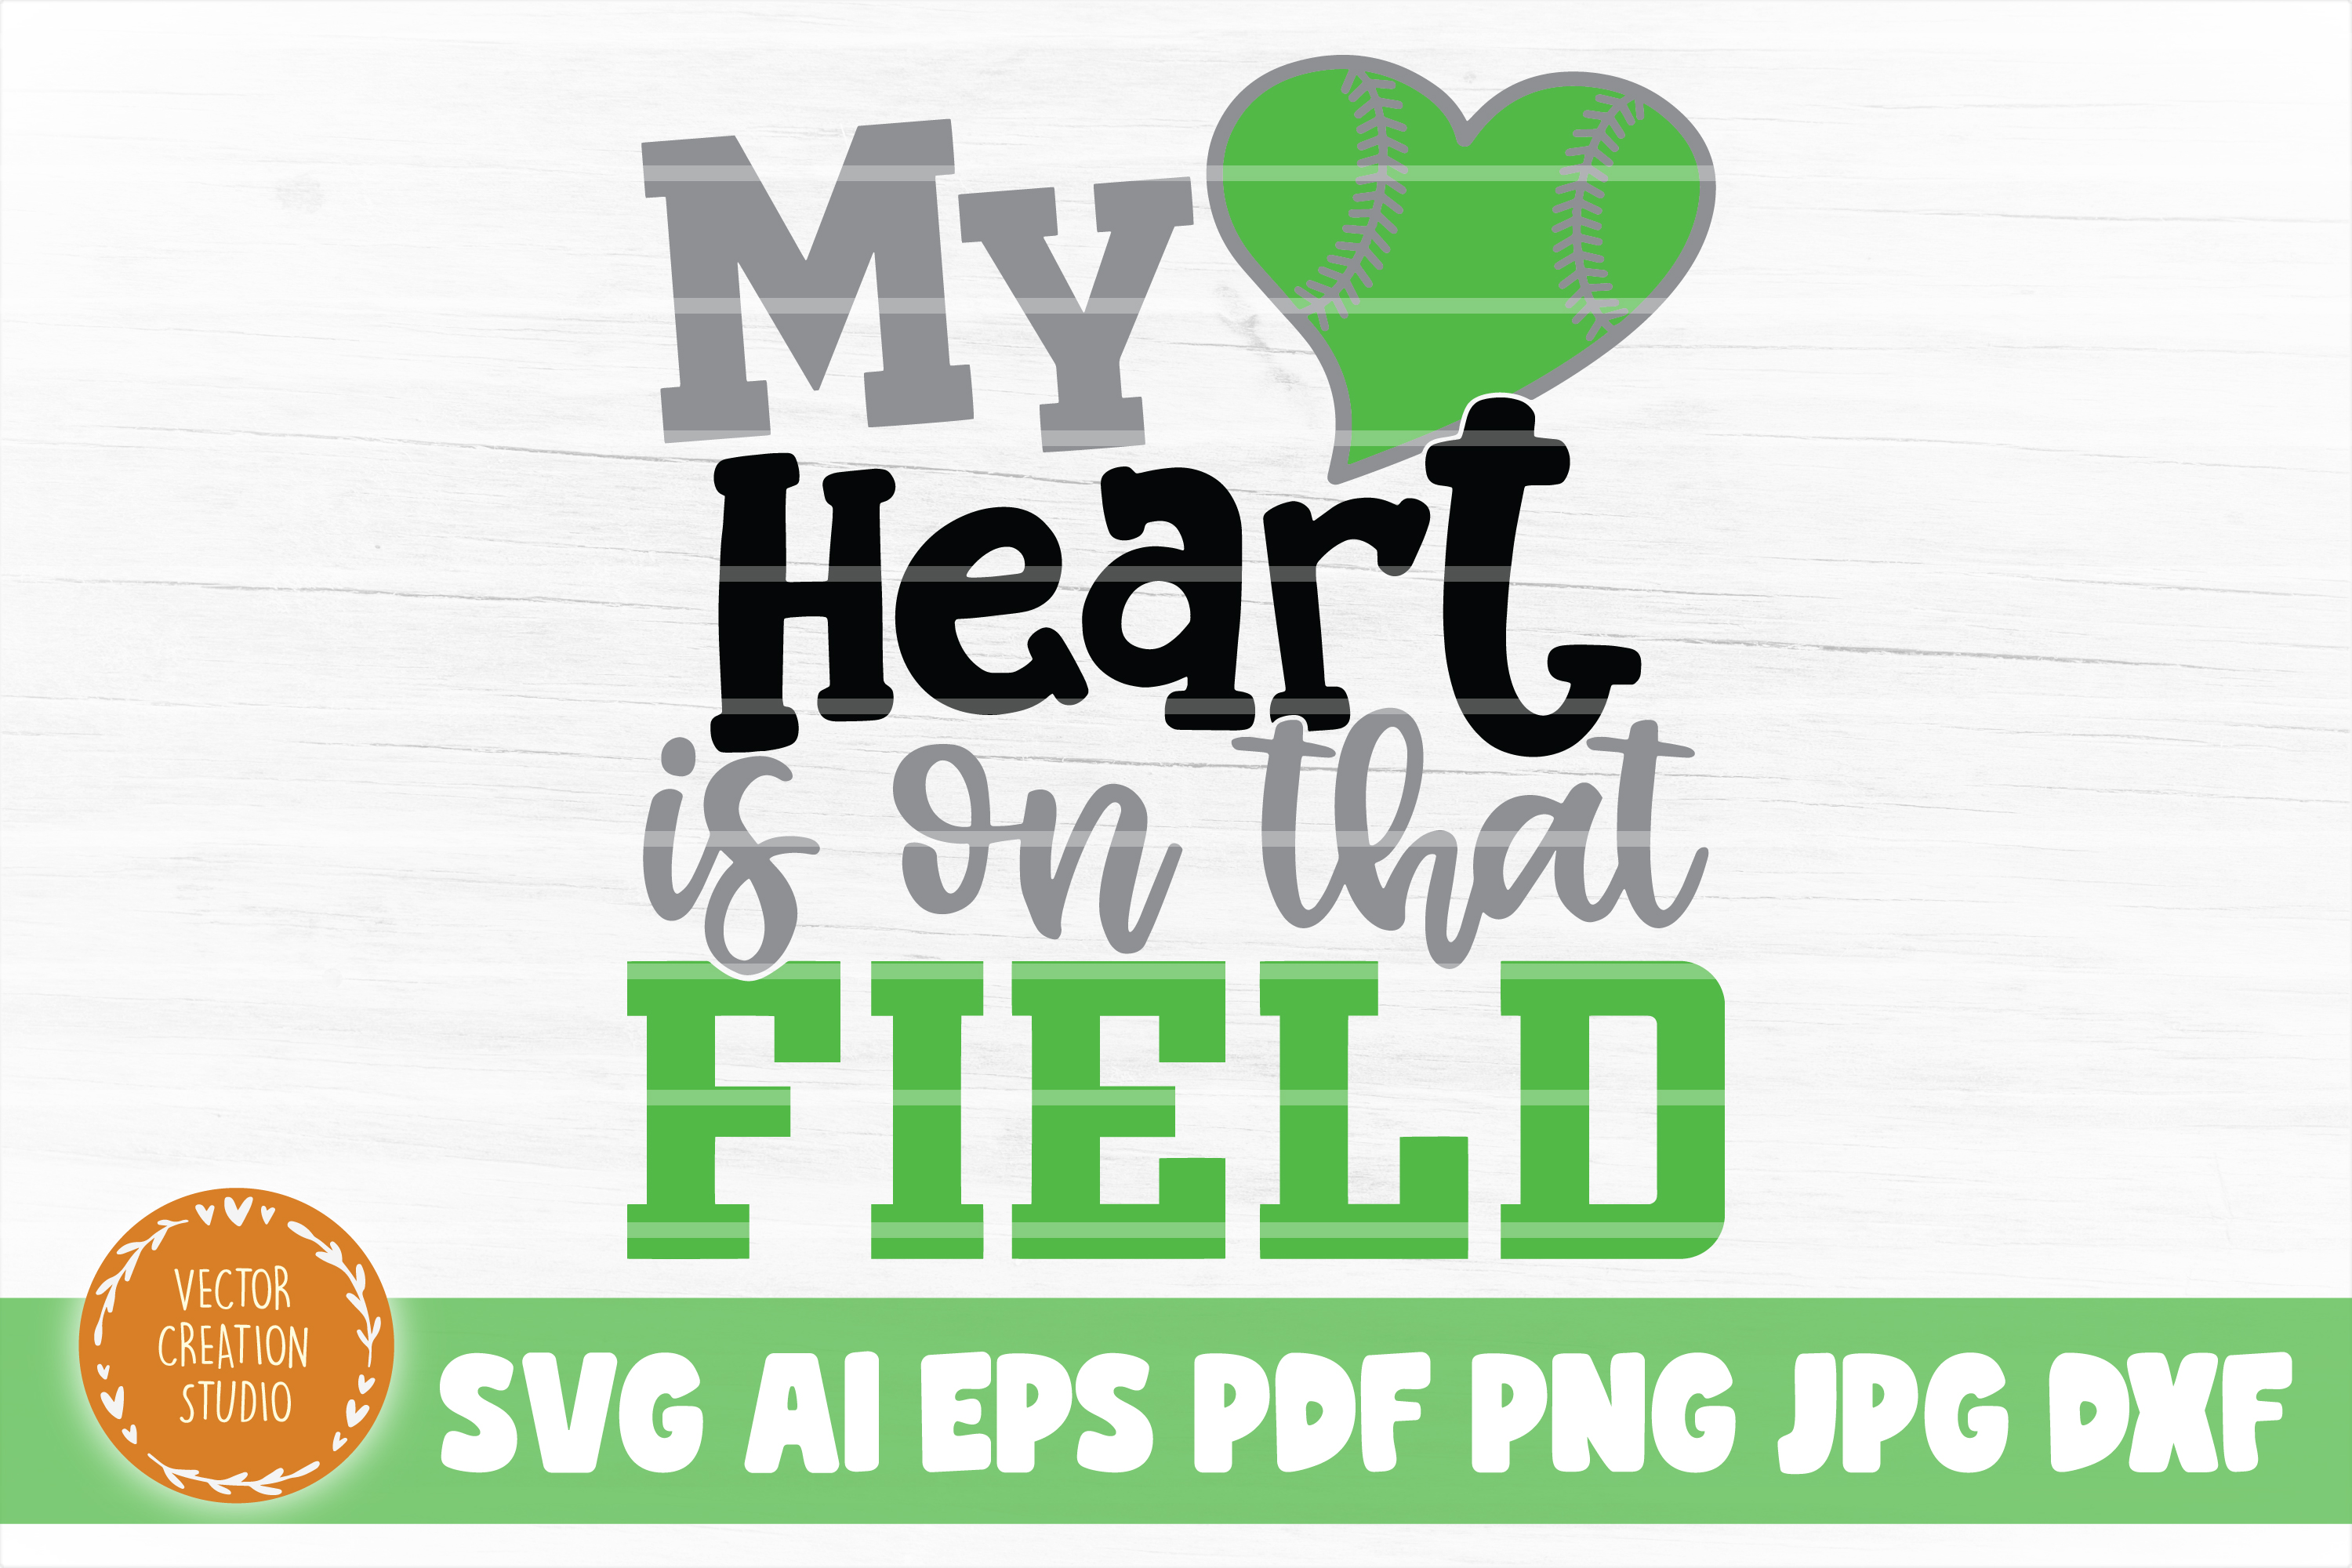 Heart Free Svg Images For Cricut Download Free And Premium Svg Cut Files